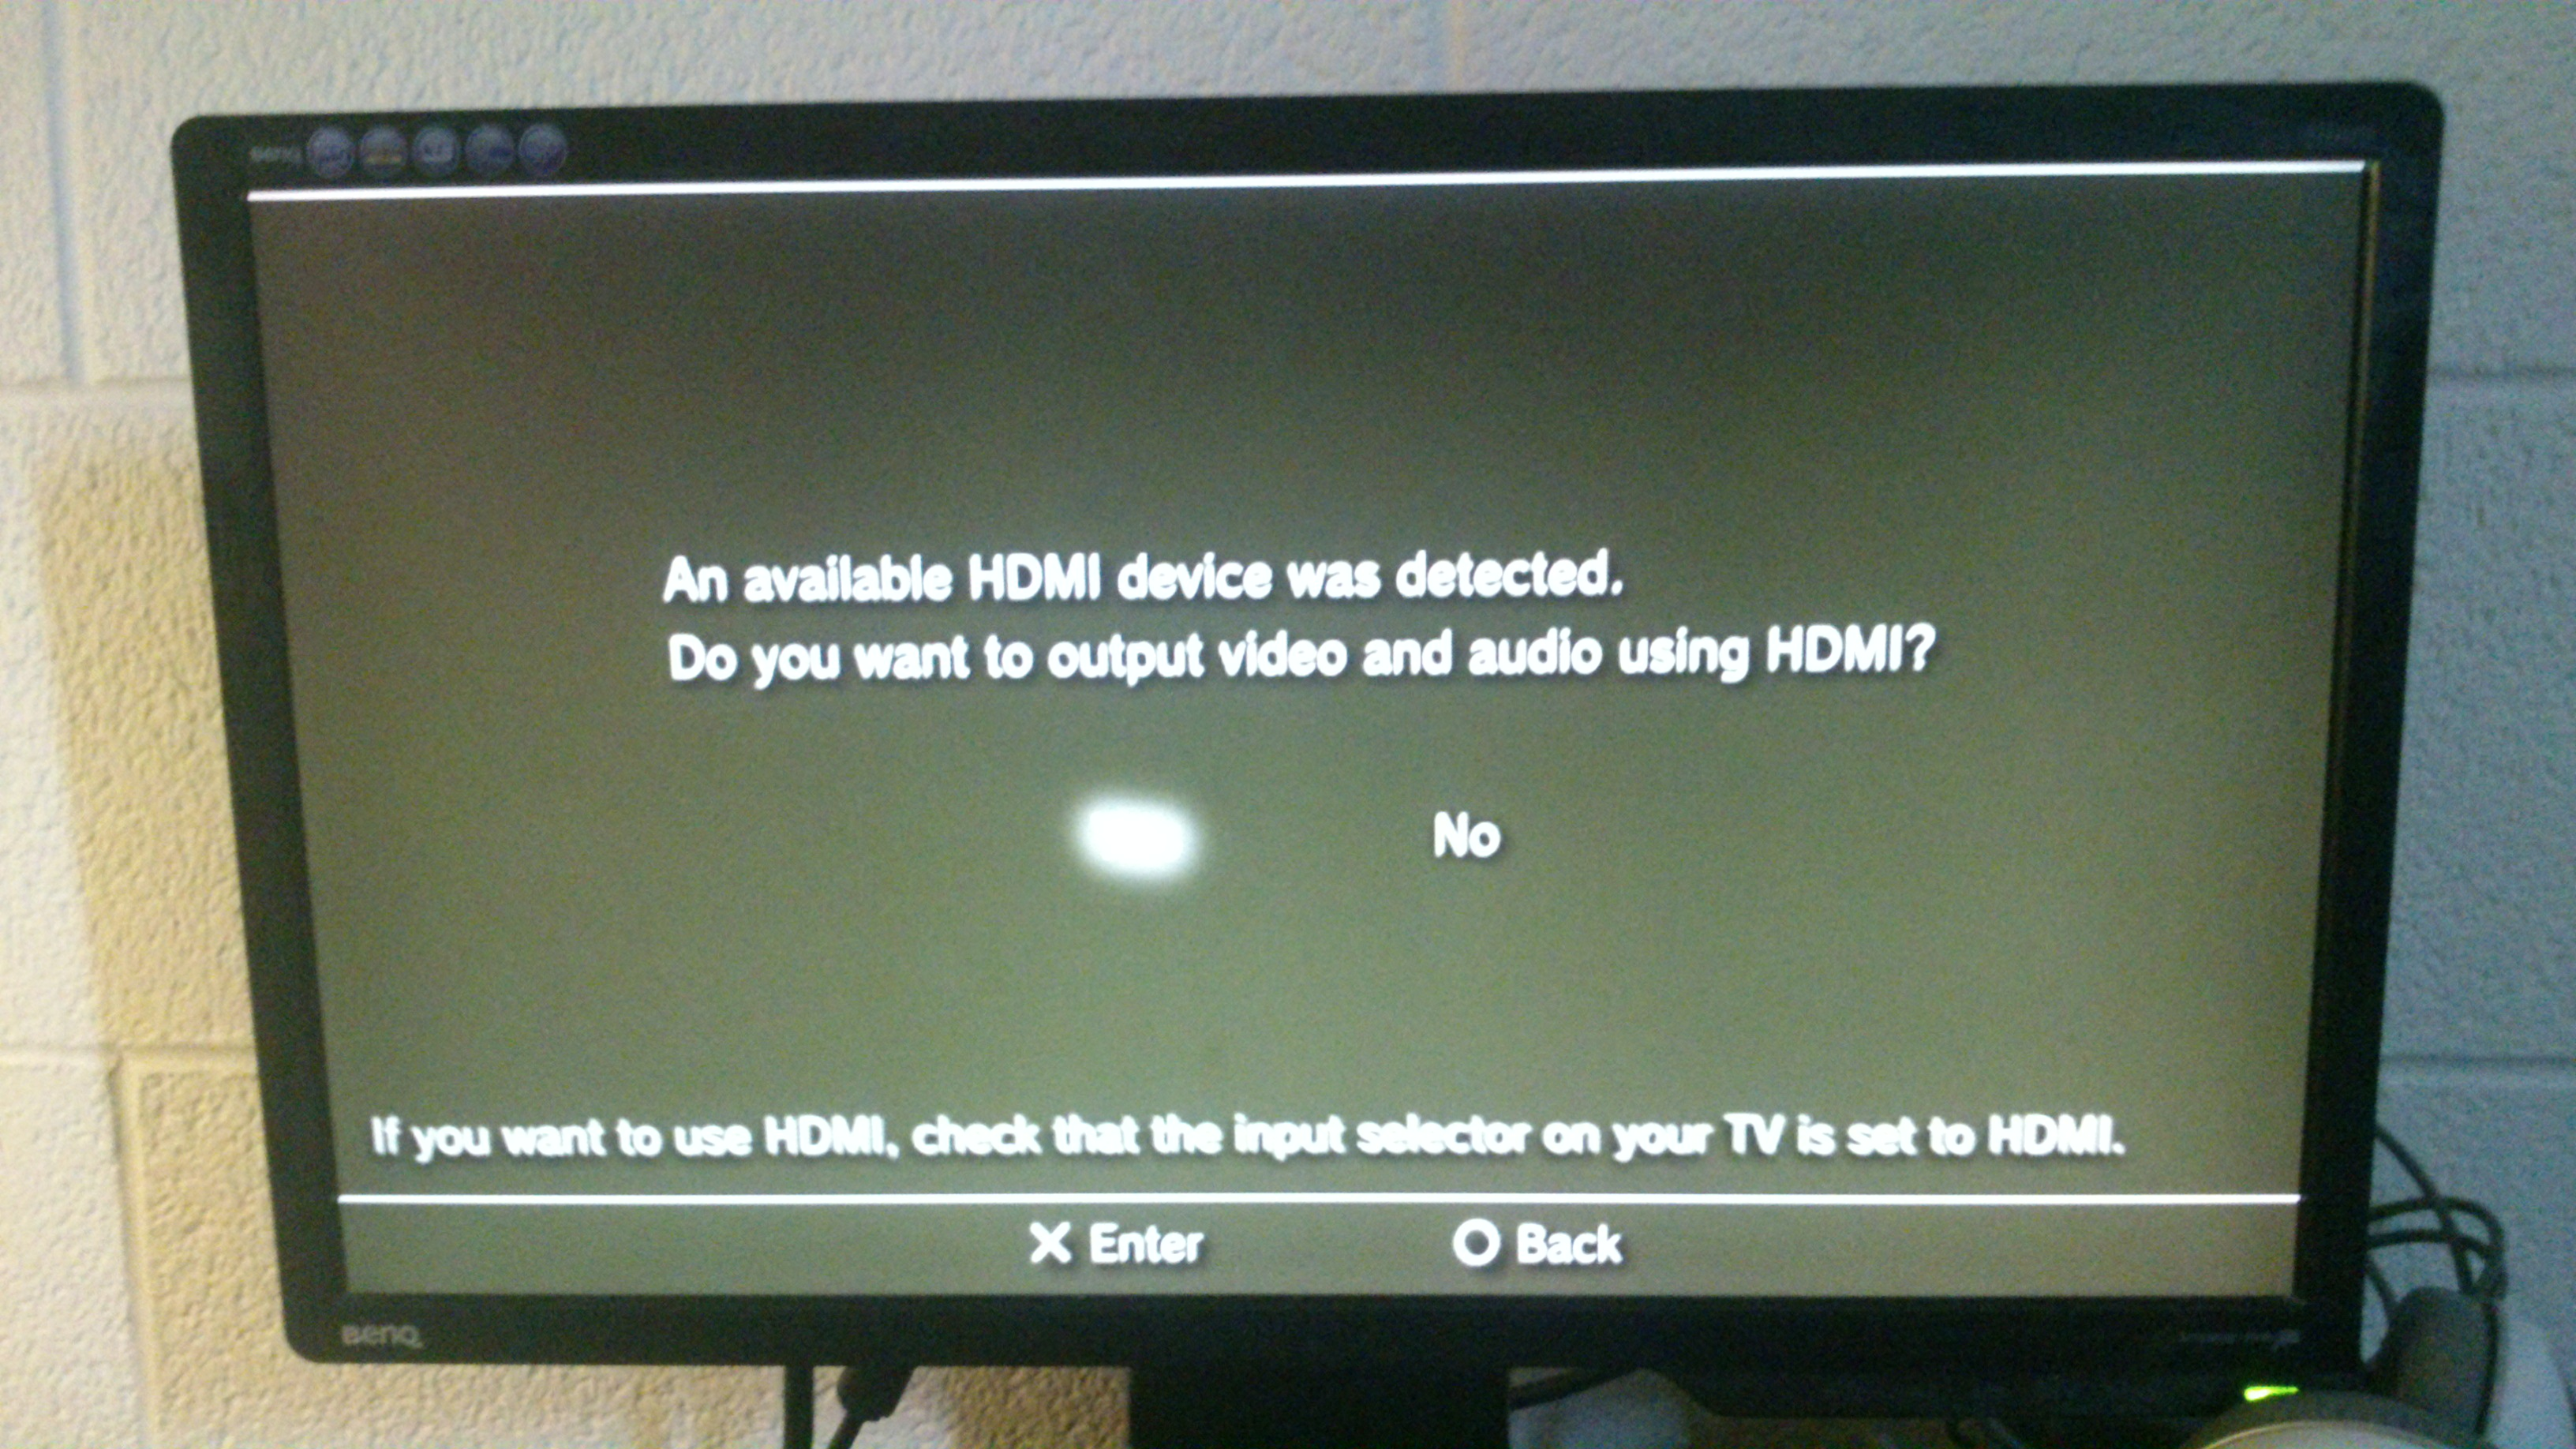 HDMI device detected screen with Yes selected.